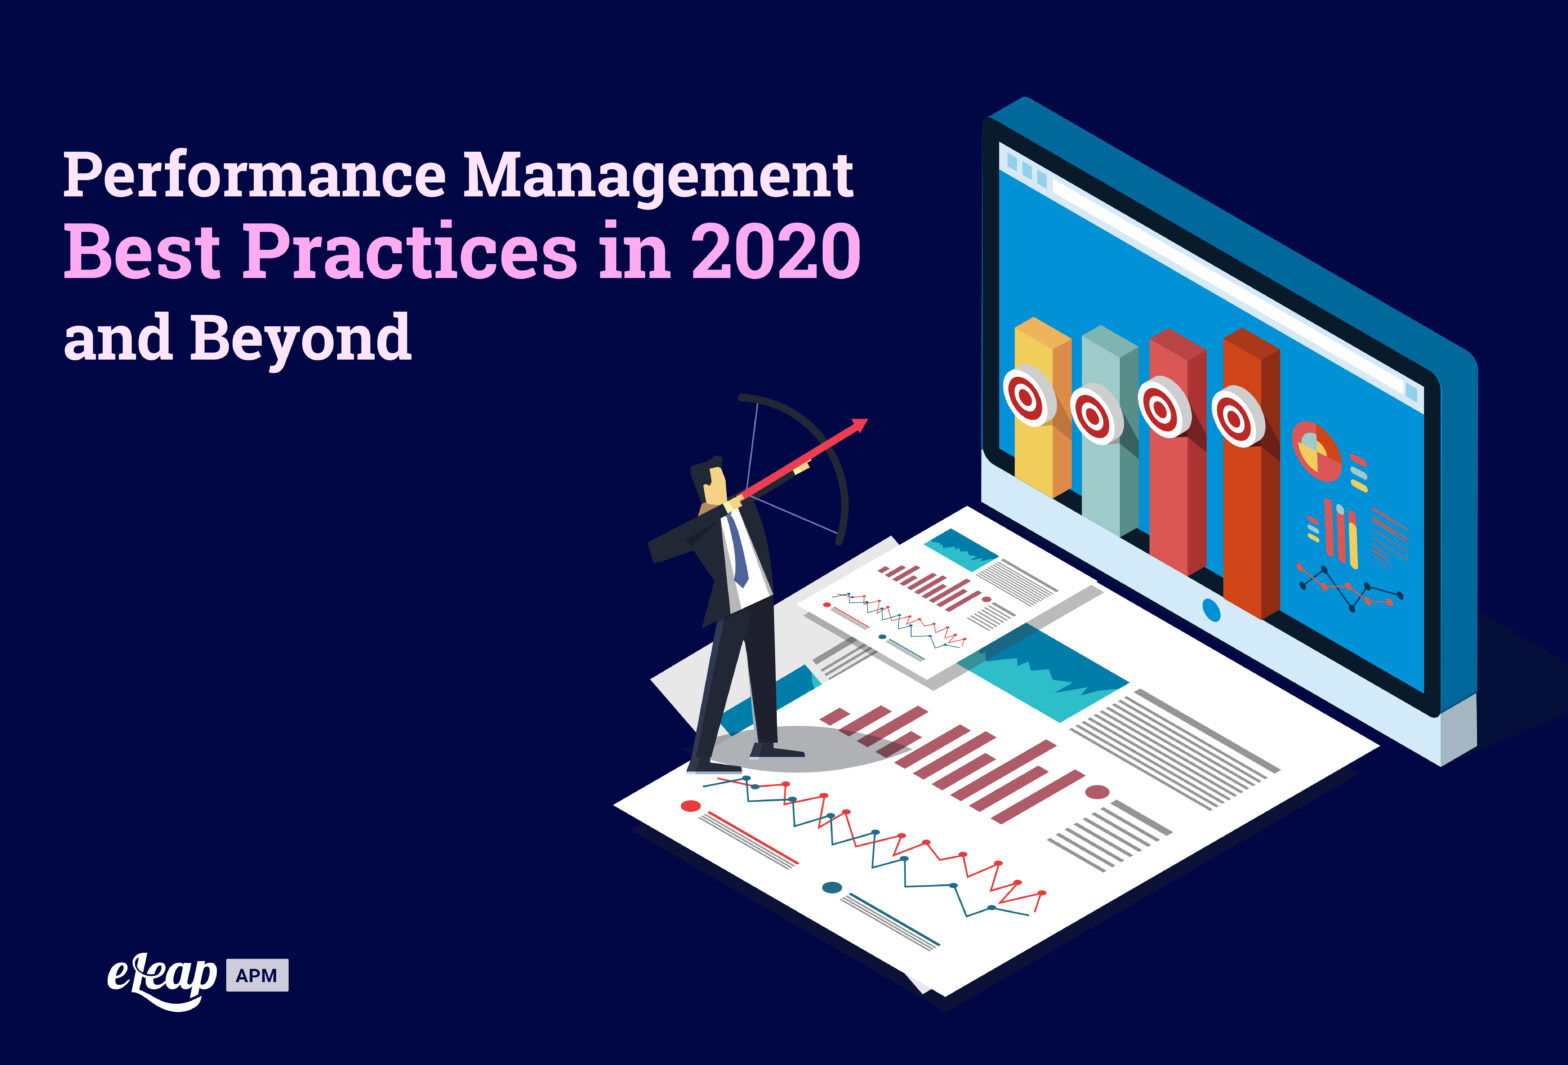 Performance Management Best Practices in 2020 and Beyond